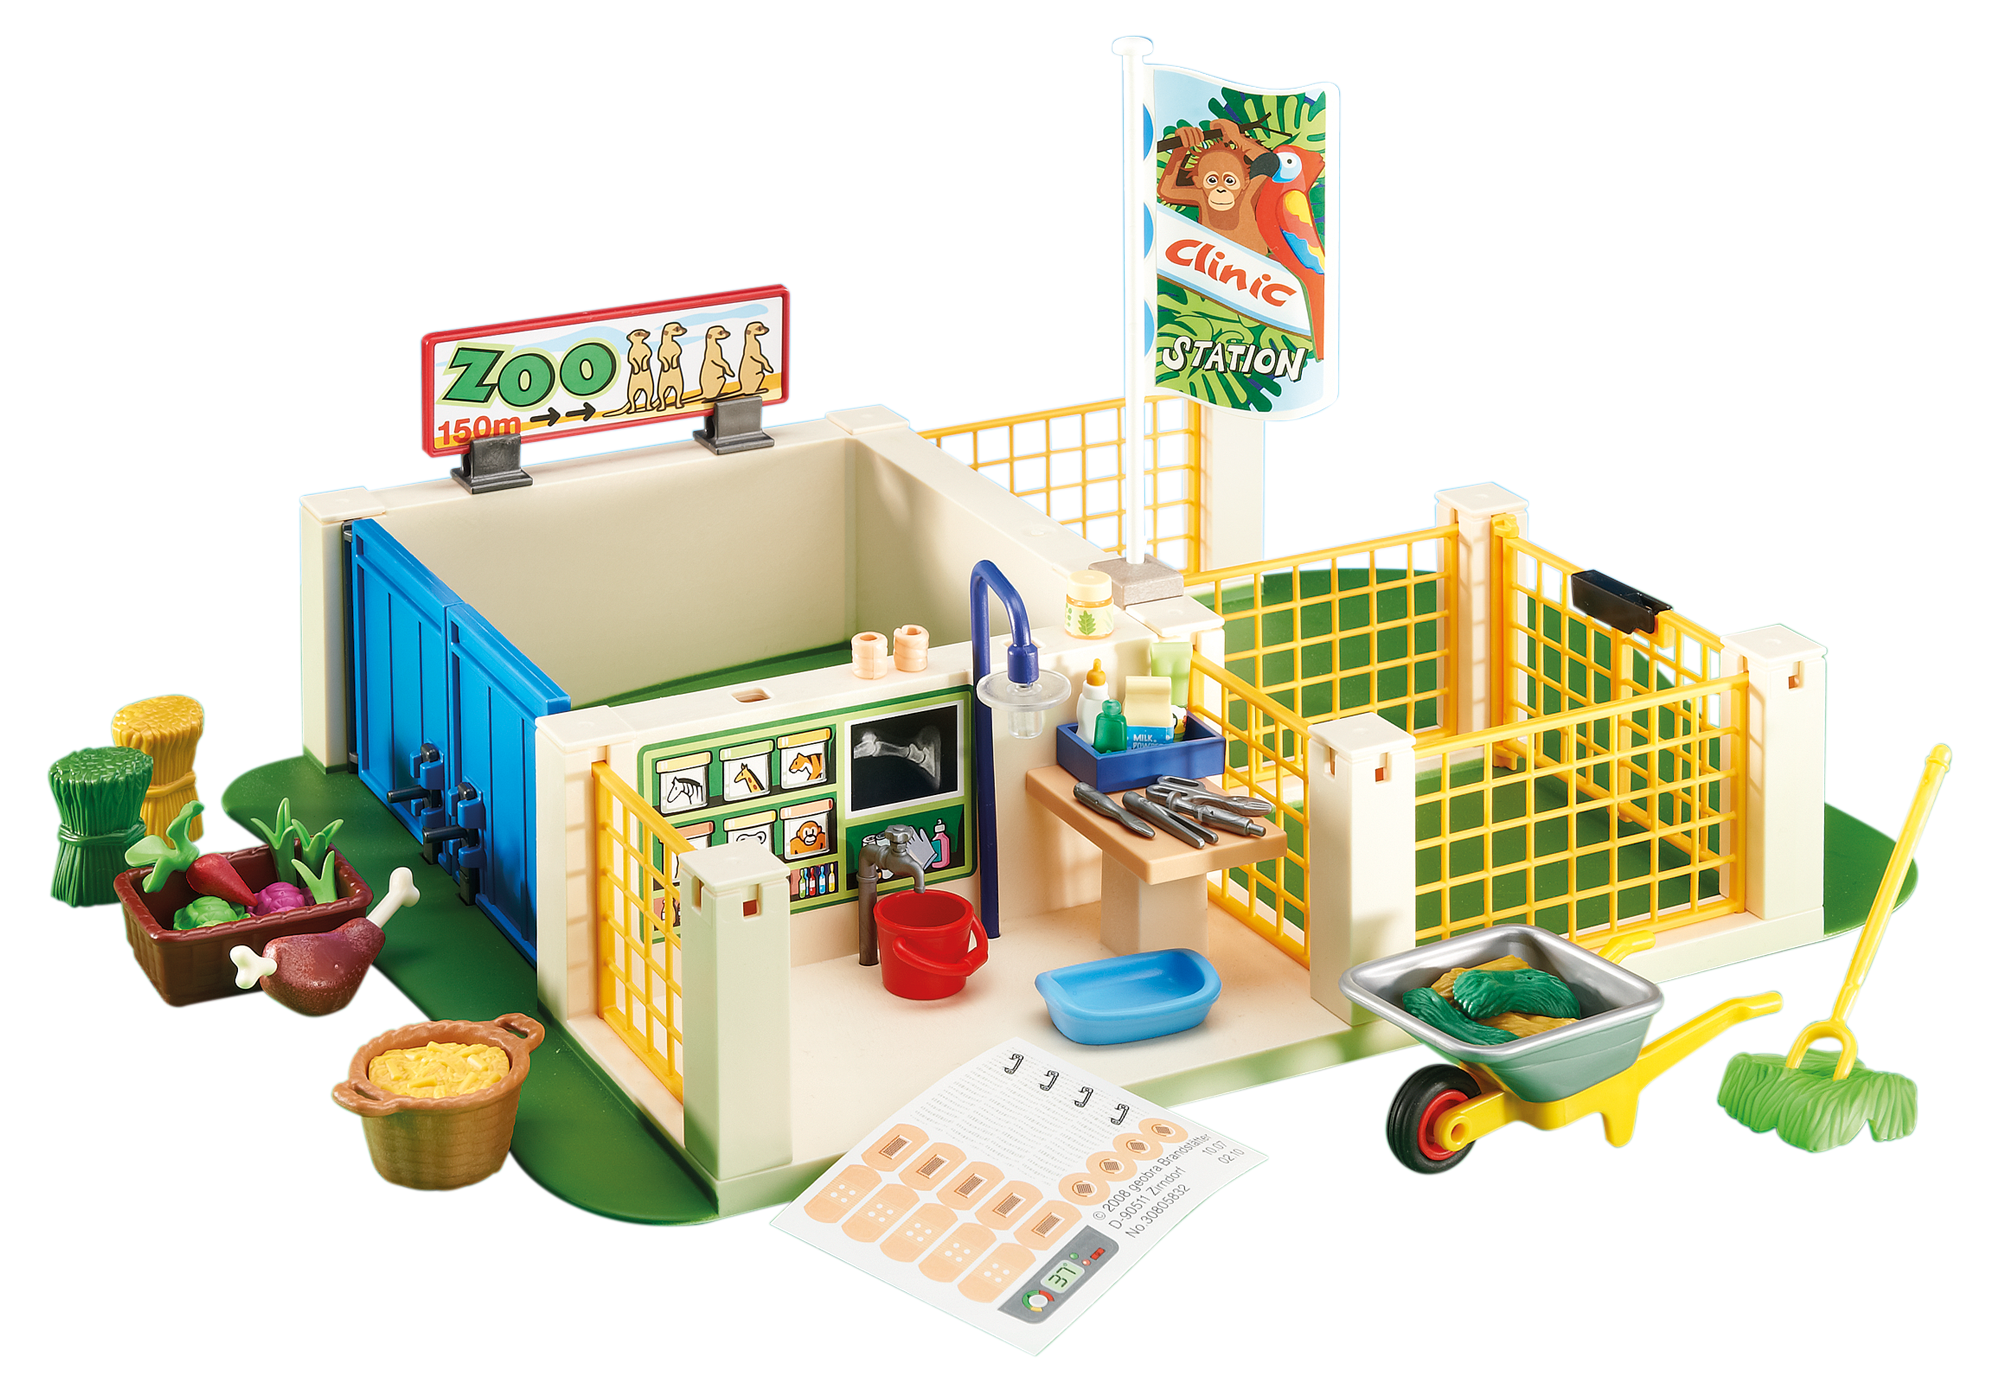 http://media.playmobil.com/i/playmobil/6425_product_detail